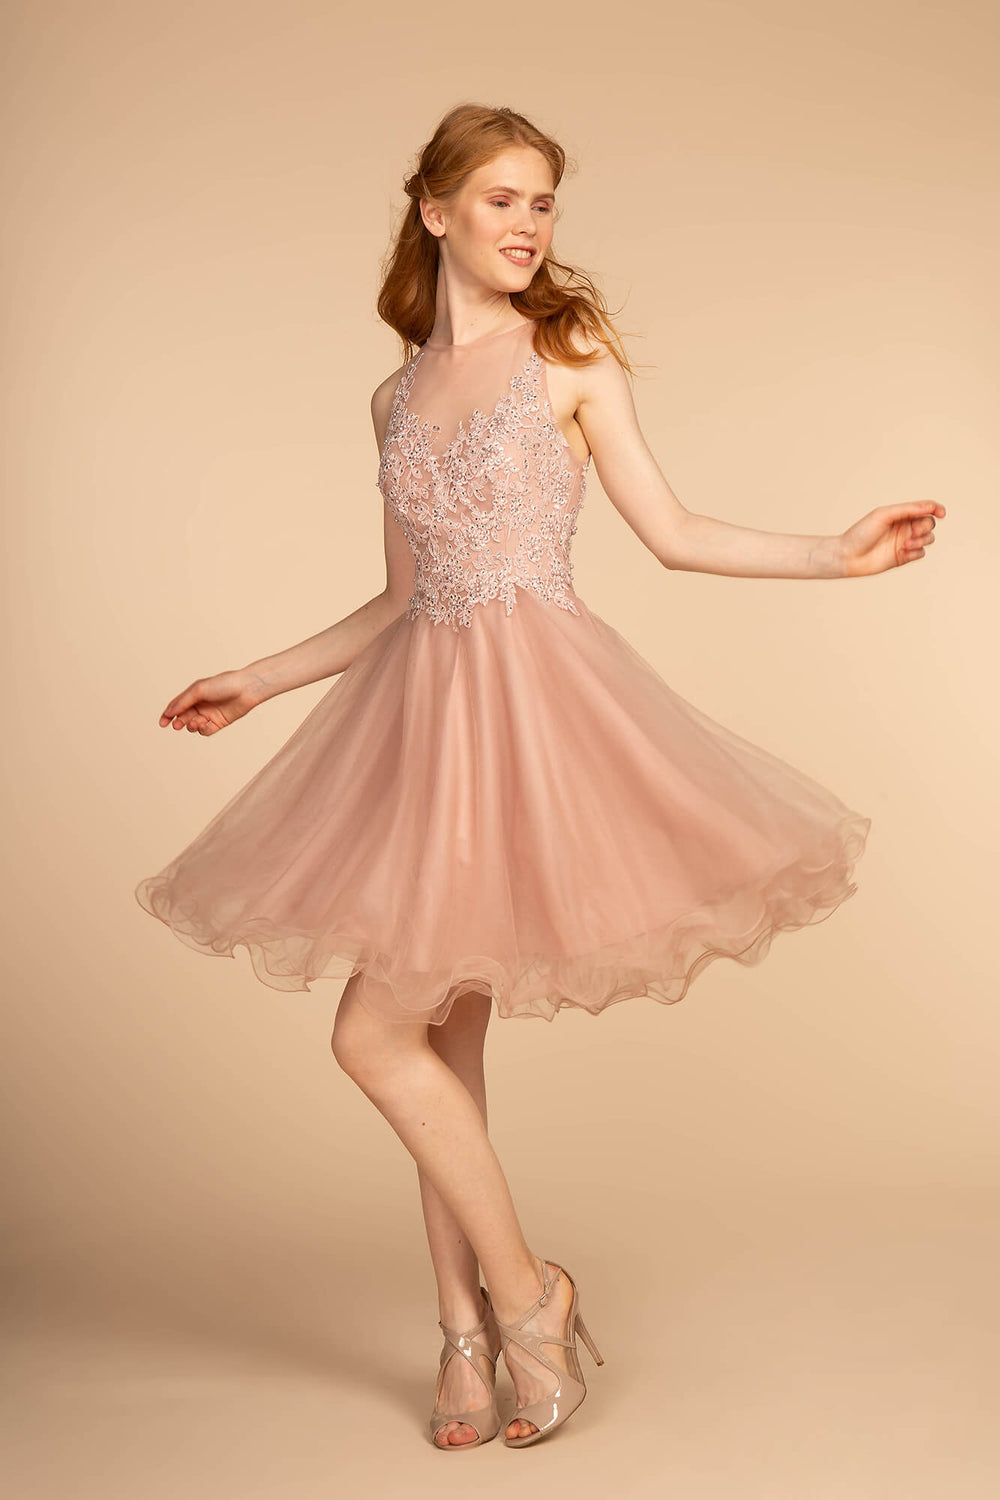 Short Prom Dress Formal Homecoming - The Dress Outlet Mauve Pink